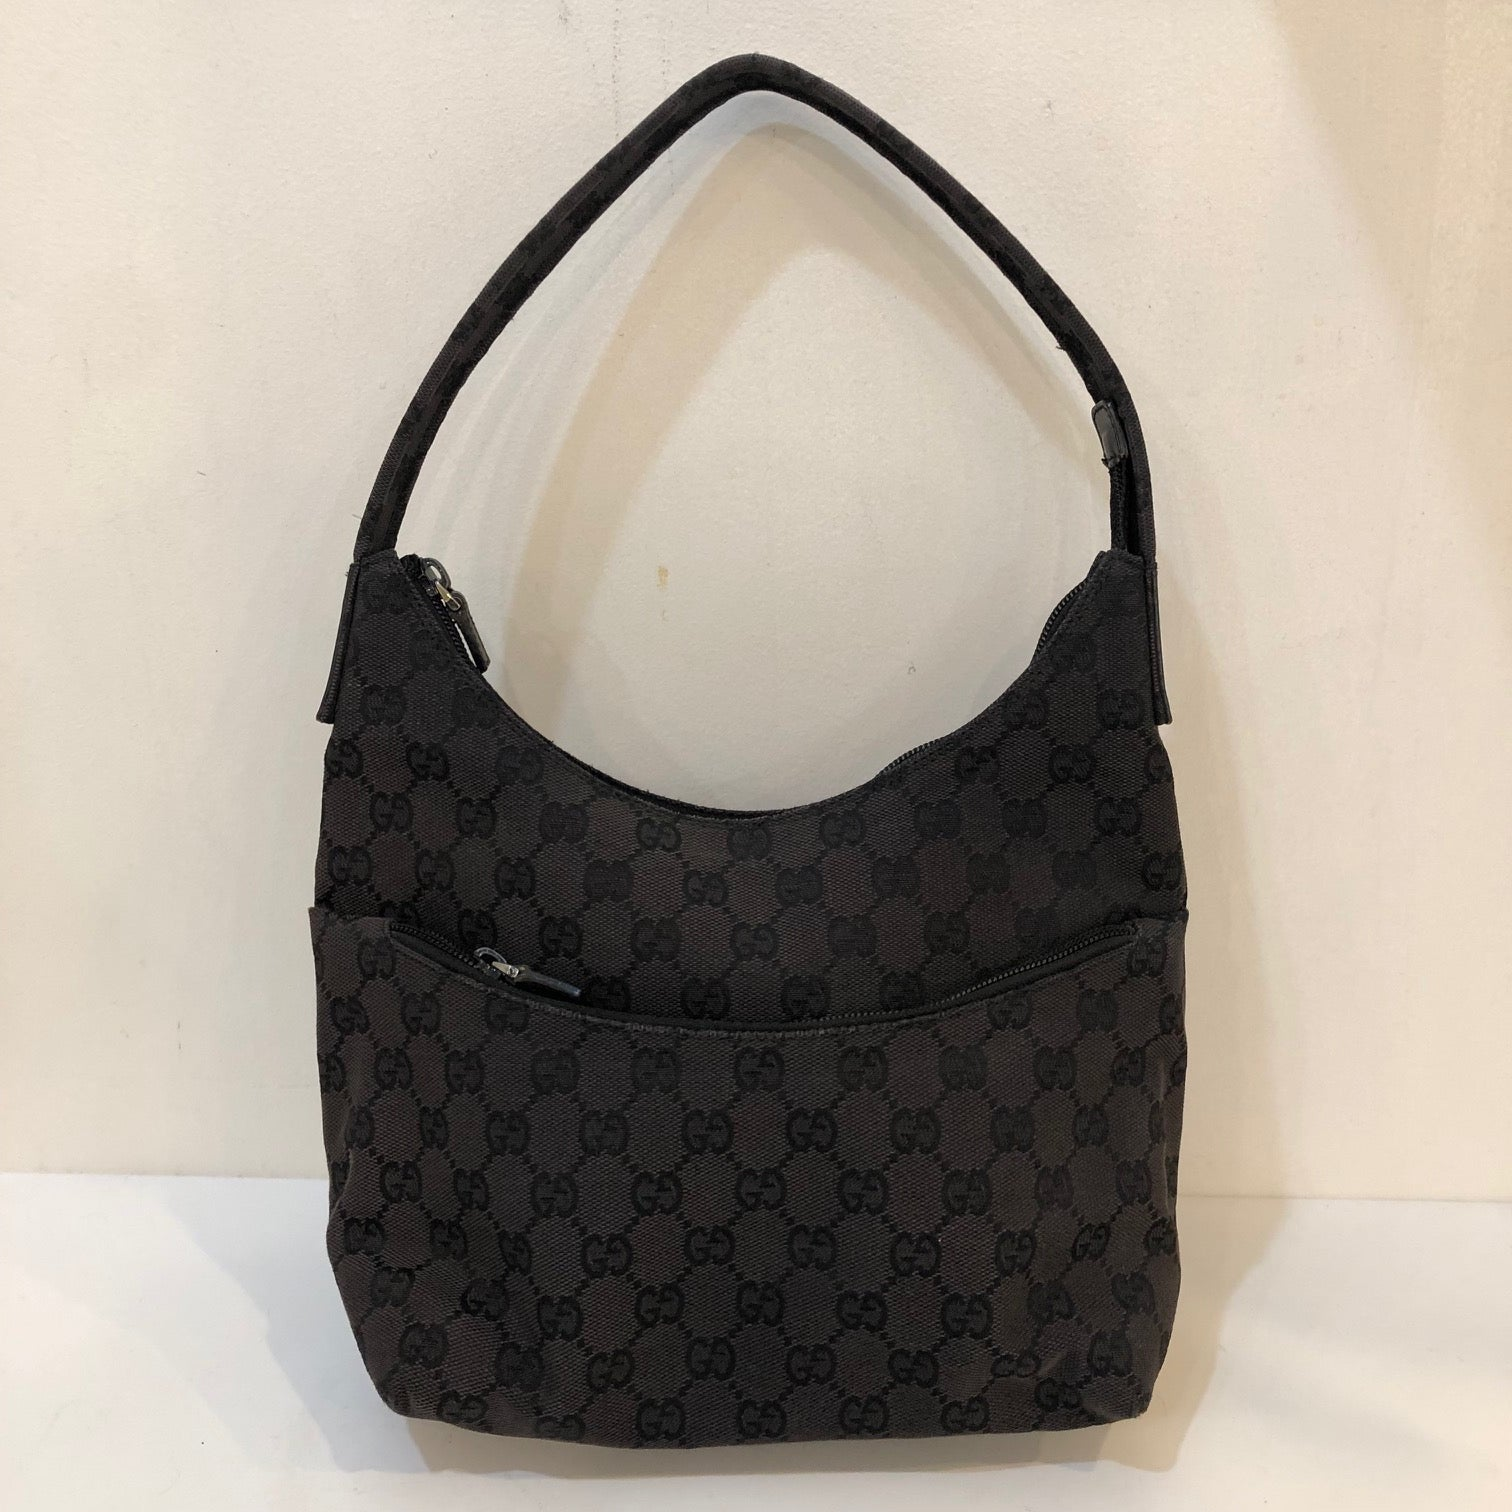 Gucci Black Canvas Shoulder Bag